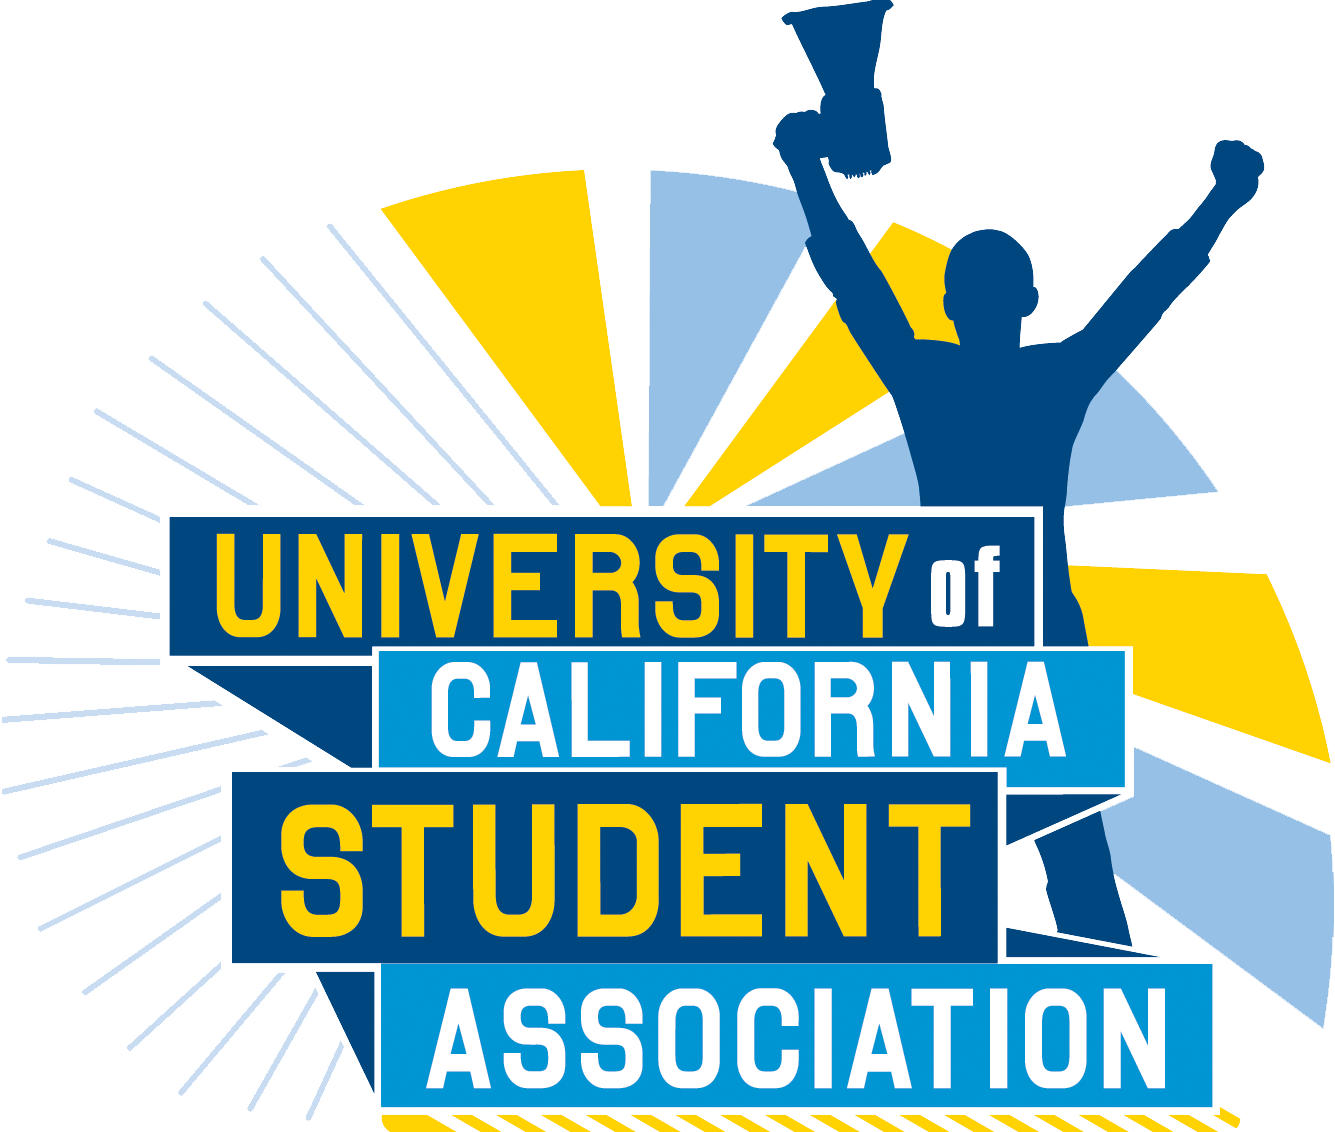 The University of California Student Association